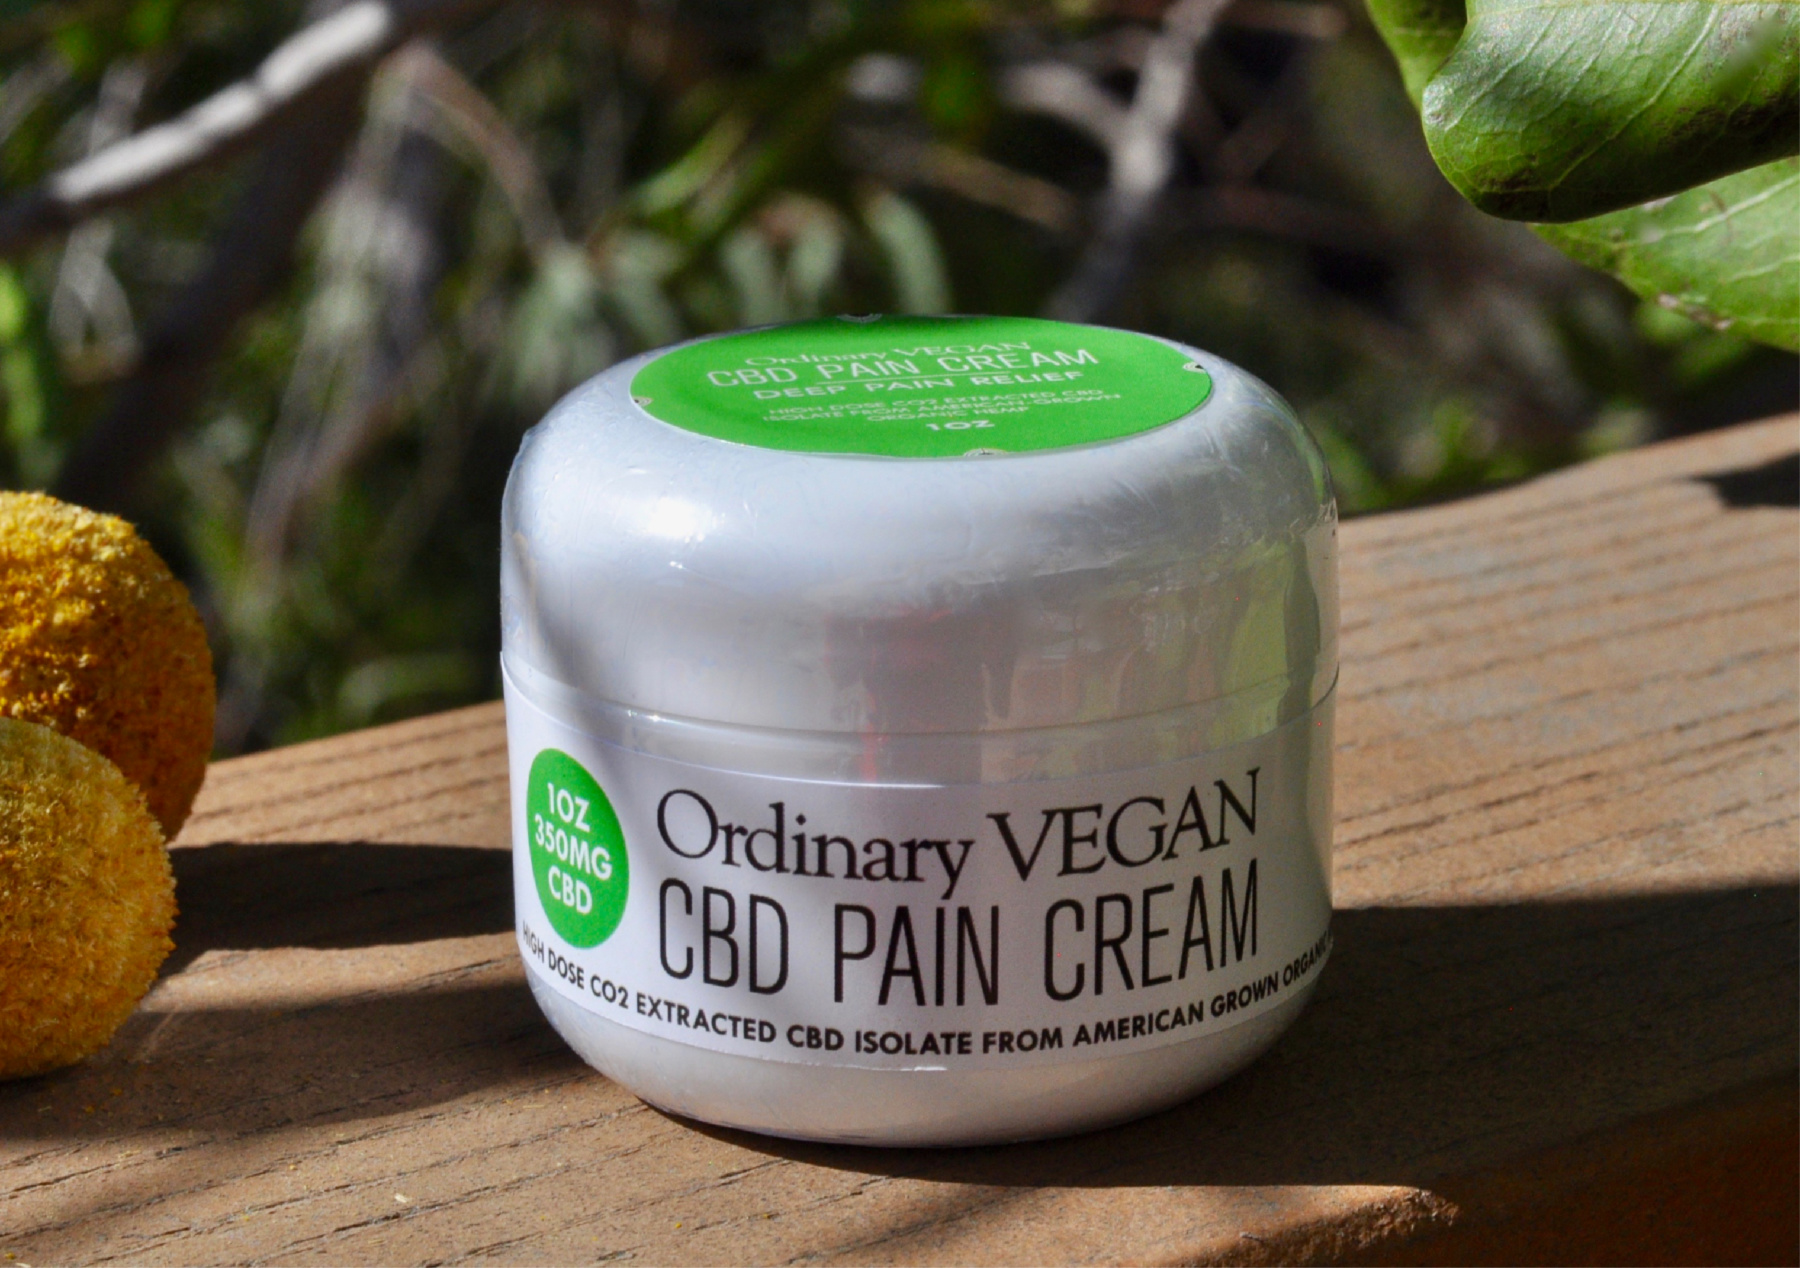 Are you in search for safer pain relief? Let the power of vegan CBD cream from organic hemp infuse your skin and penetrate deep seated pain. (#vegan) ordinaryvegan.net